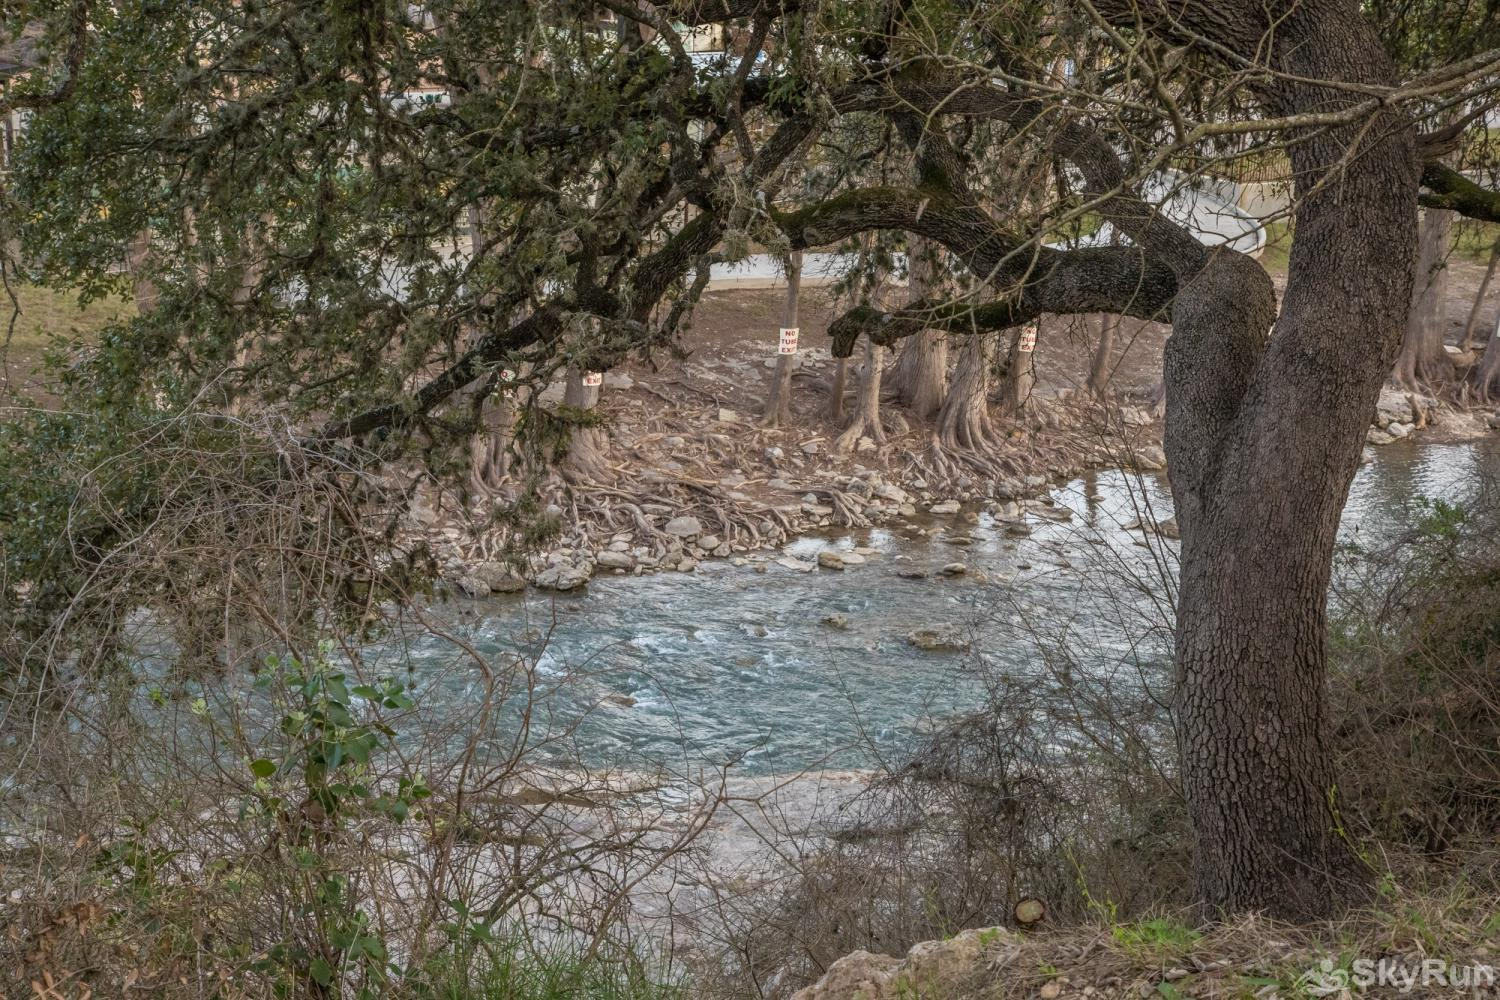 DUKE'S HORSESHOE HOUSE Enjoy the Sights and Sounds of the Guadalupe River